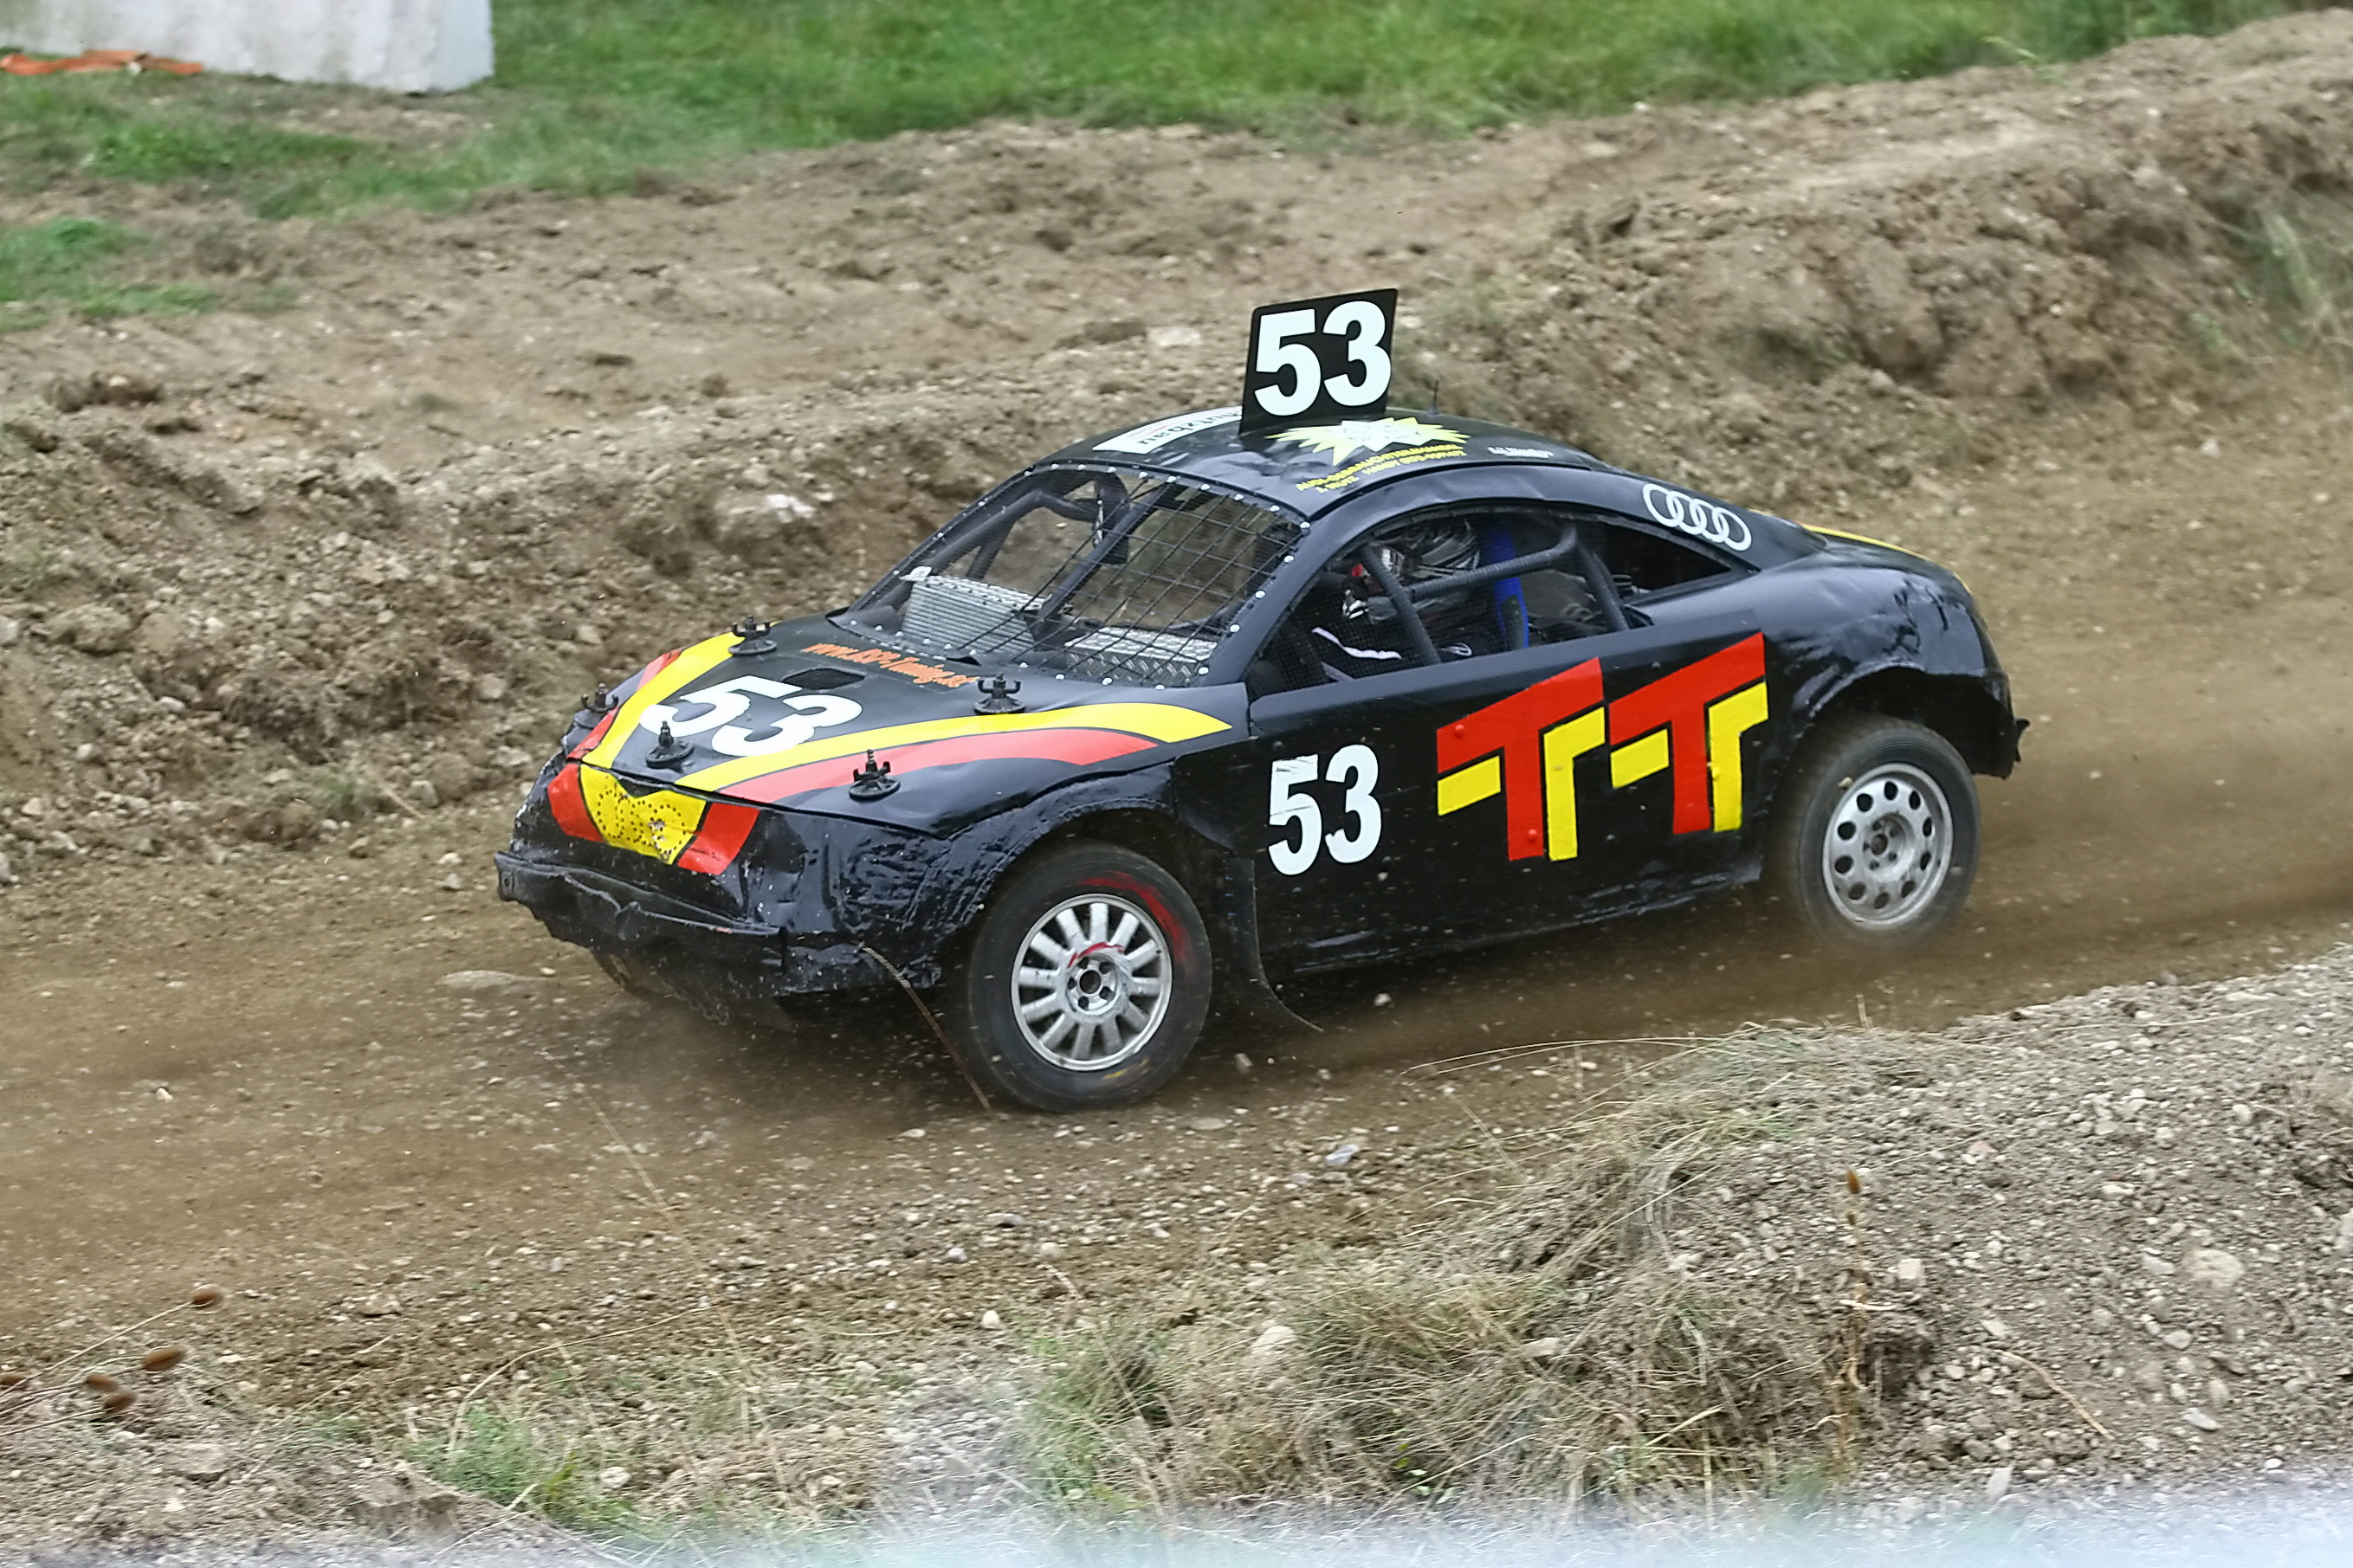 Fmt pictures stock car staatsmeisterschaft endlauf vom for Stock car a couture 2015